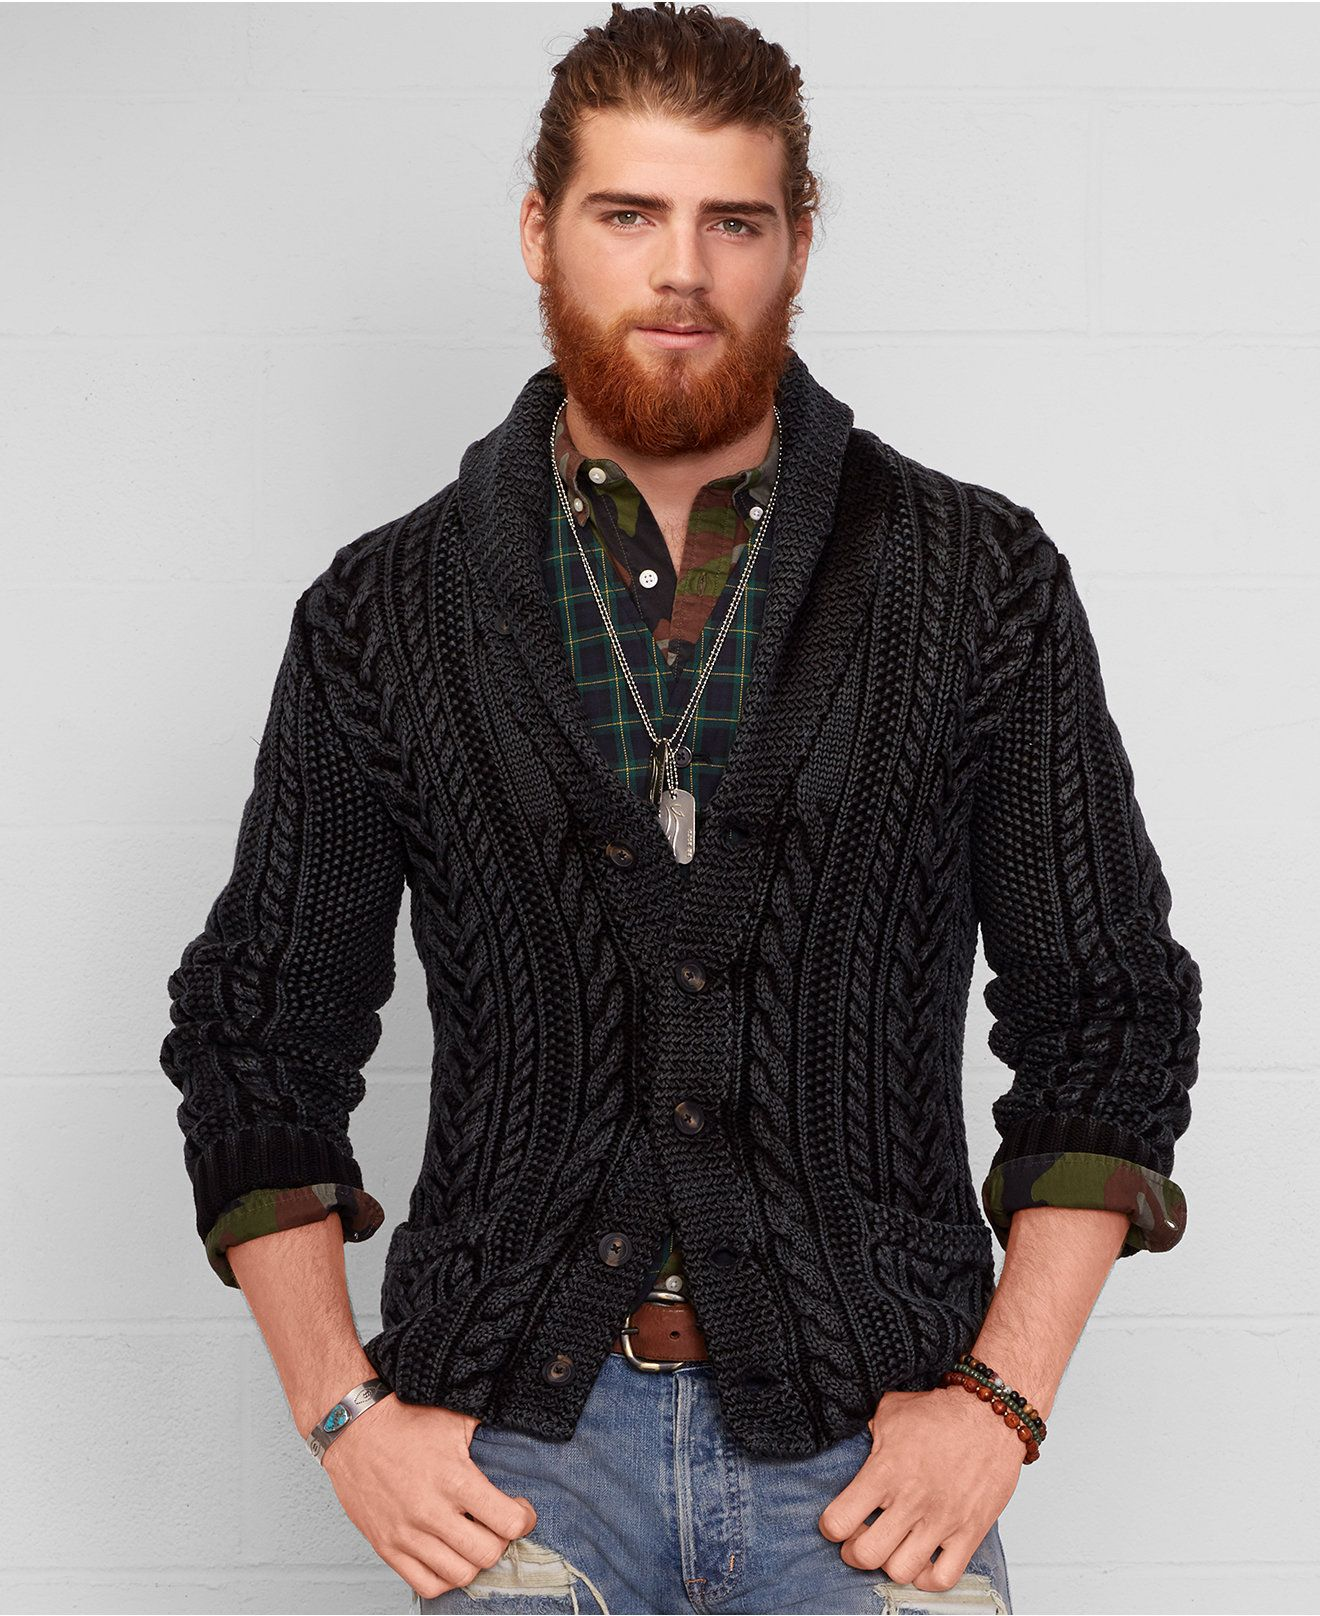 91f9cc725 Denim   Supply Ralph Lauren Cable Knit Shawl Cardigan - Sweaters - Men -  Macy s